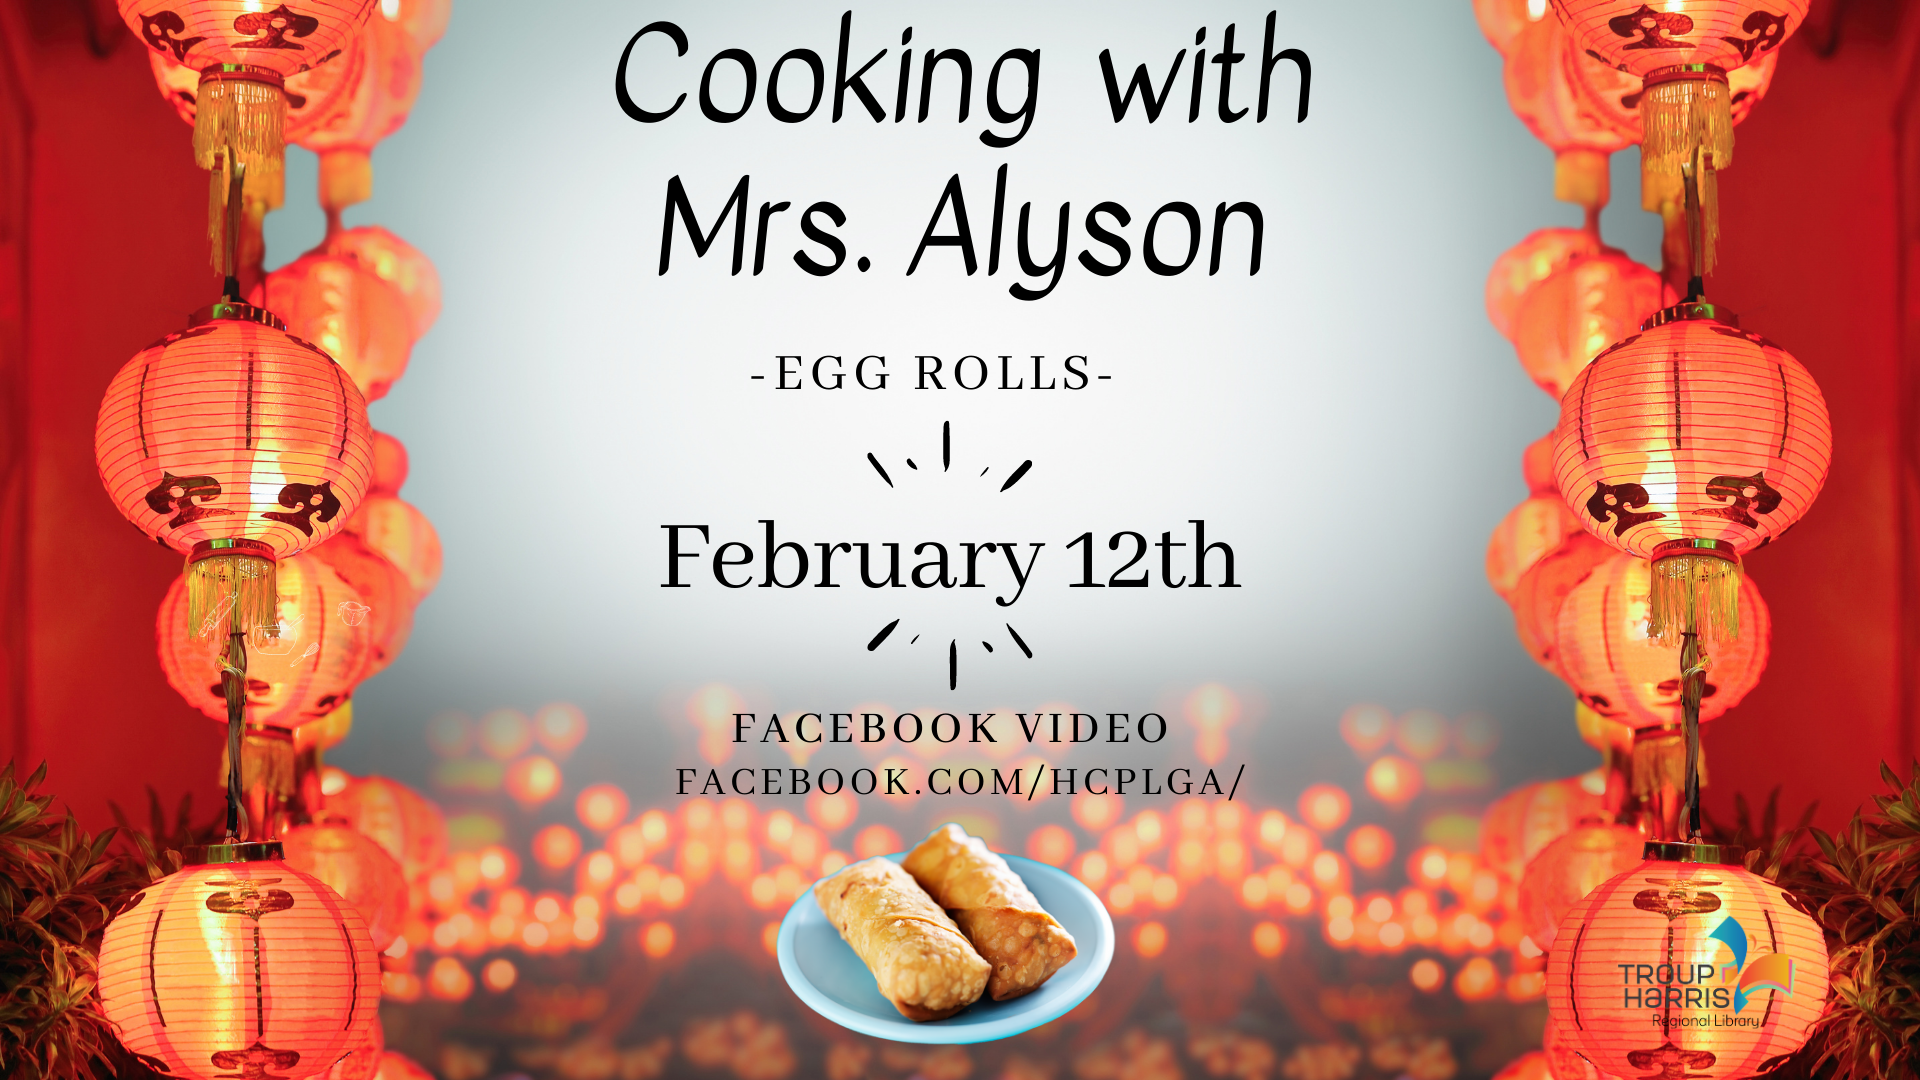 Cooking with Mrs. Alyson